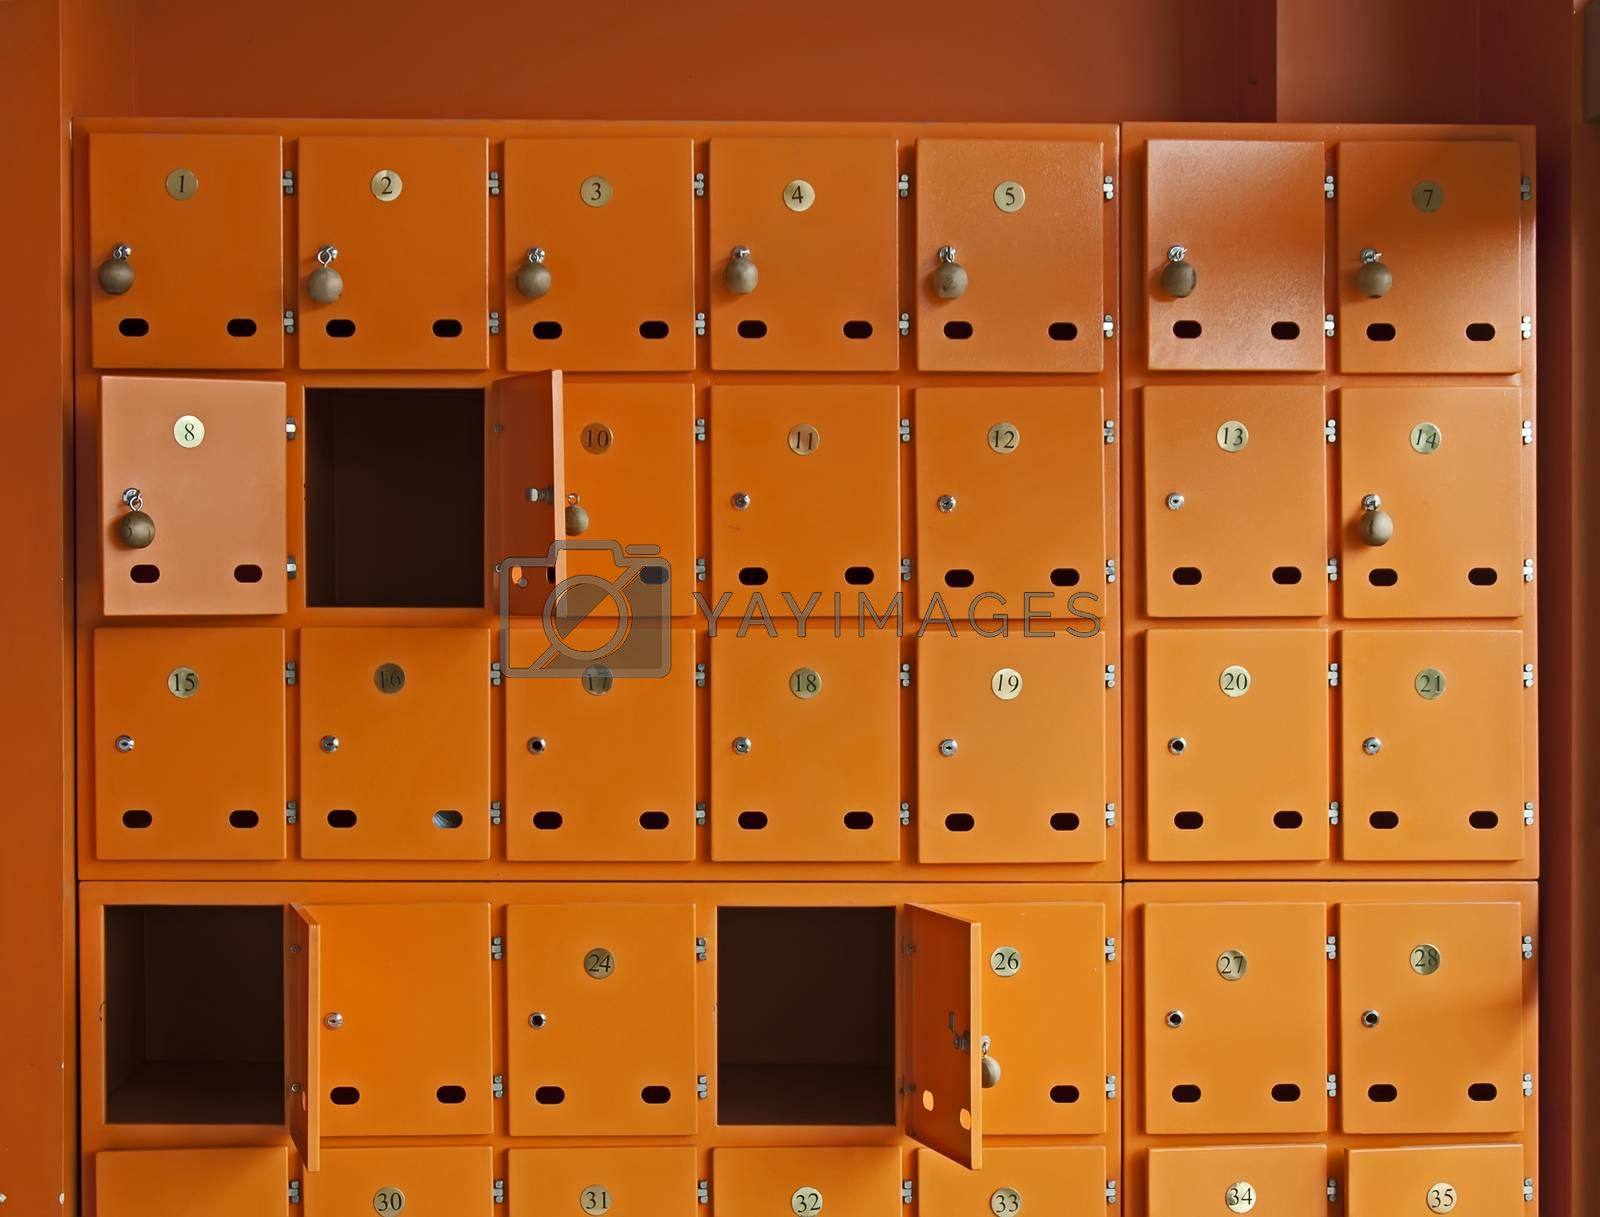 Many orange mailboxes. Some of them opened